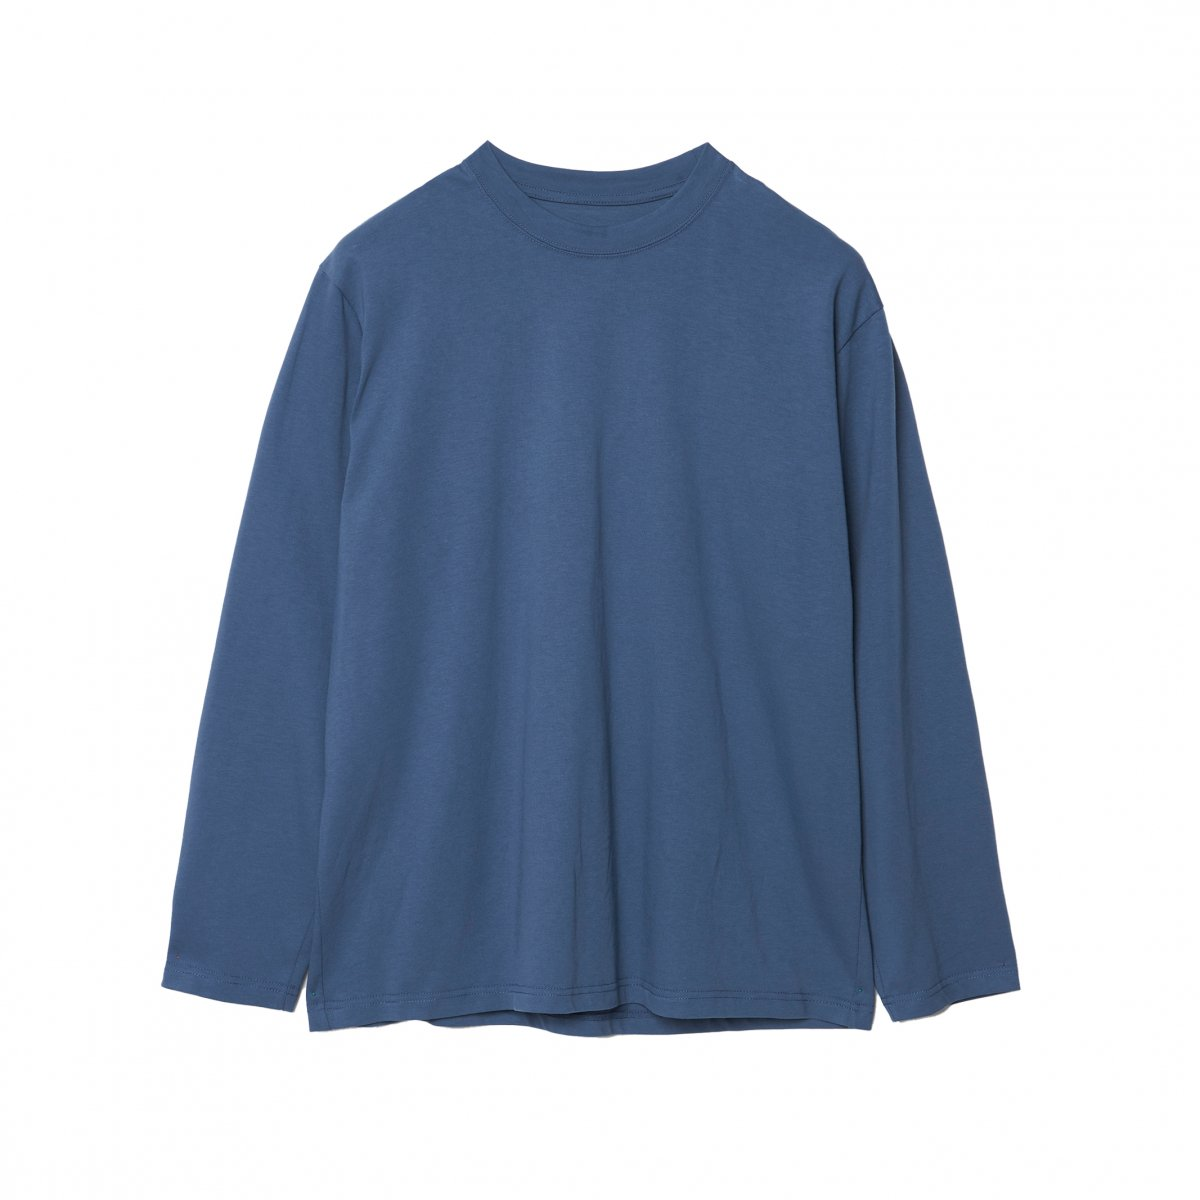 <img class='new_mark_img1' src='https://img.shop-pro.jp/img/new/icons5.gif' style='border:none;display:inline;margin:0px;padding:0px;width:auto;' />EXTRA STAPLE COTTON LONG SLEEVE TEE / BLUE